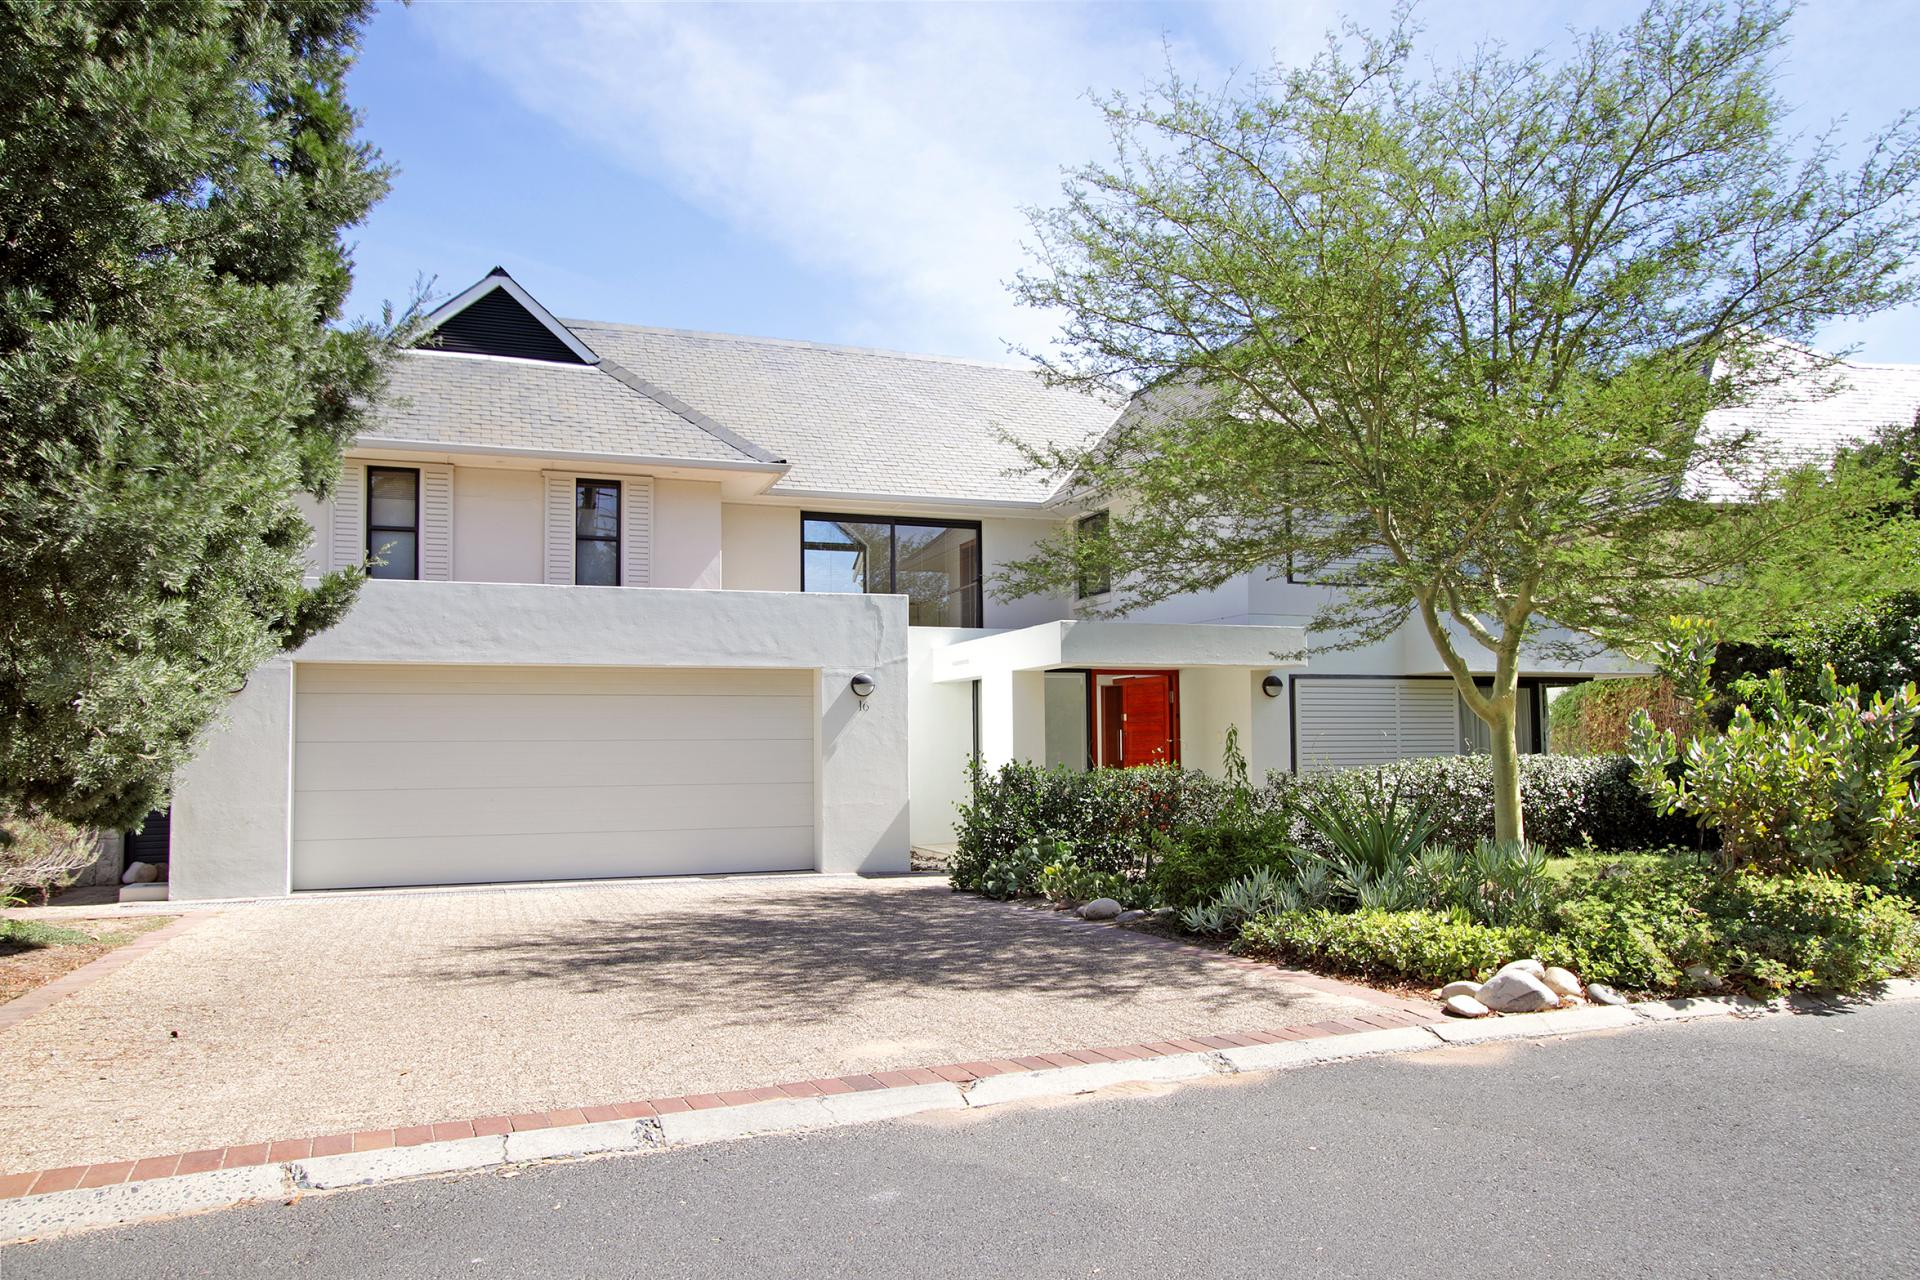 4 Bedroom House For Sale In Paarl